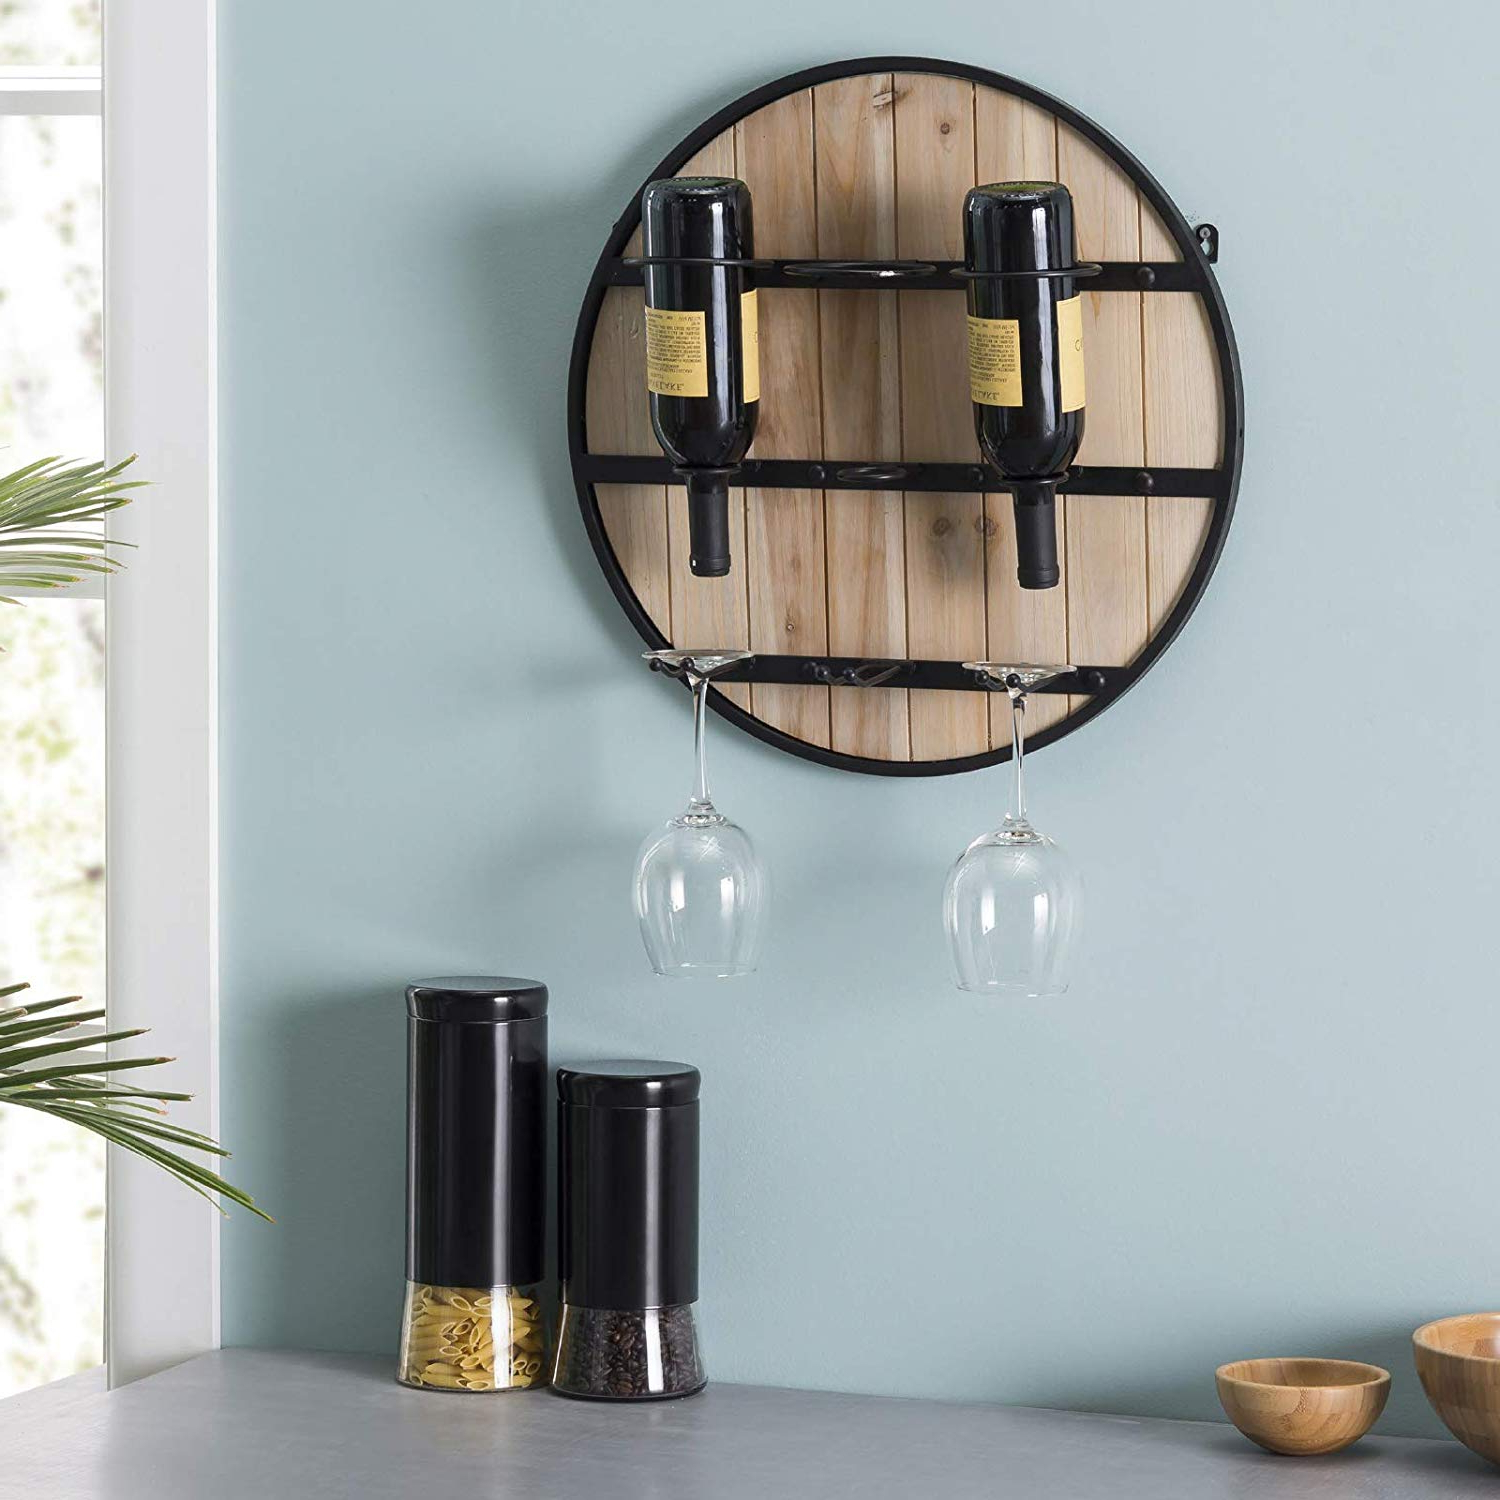 Recent Three Glass Holder Wall Decor With Regard To Excello Global Products Wooden Wall Mounted Wine Rack: Wine Bottle (View 14 of 20)